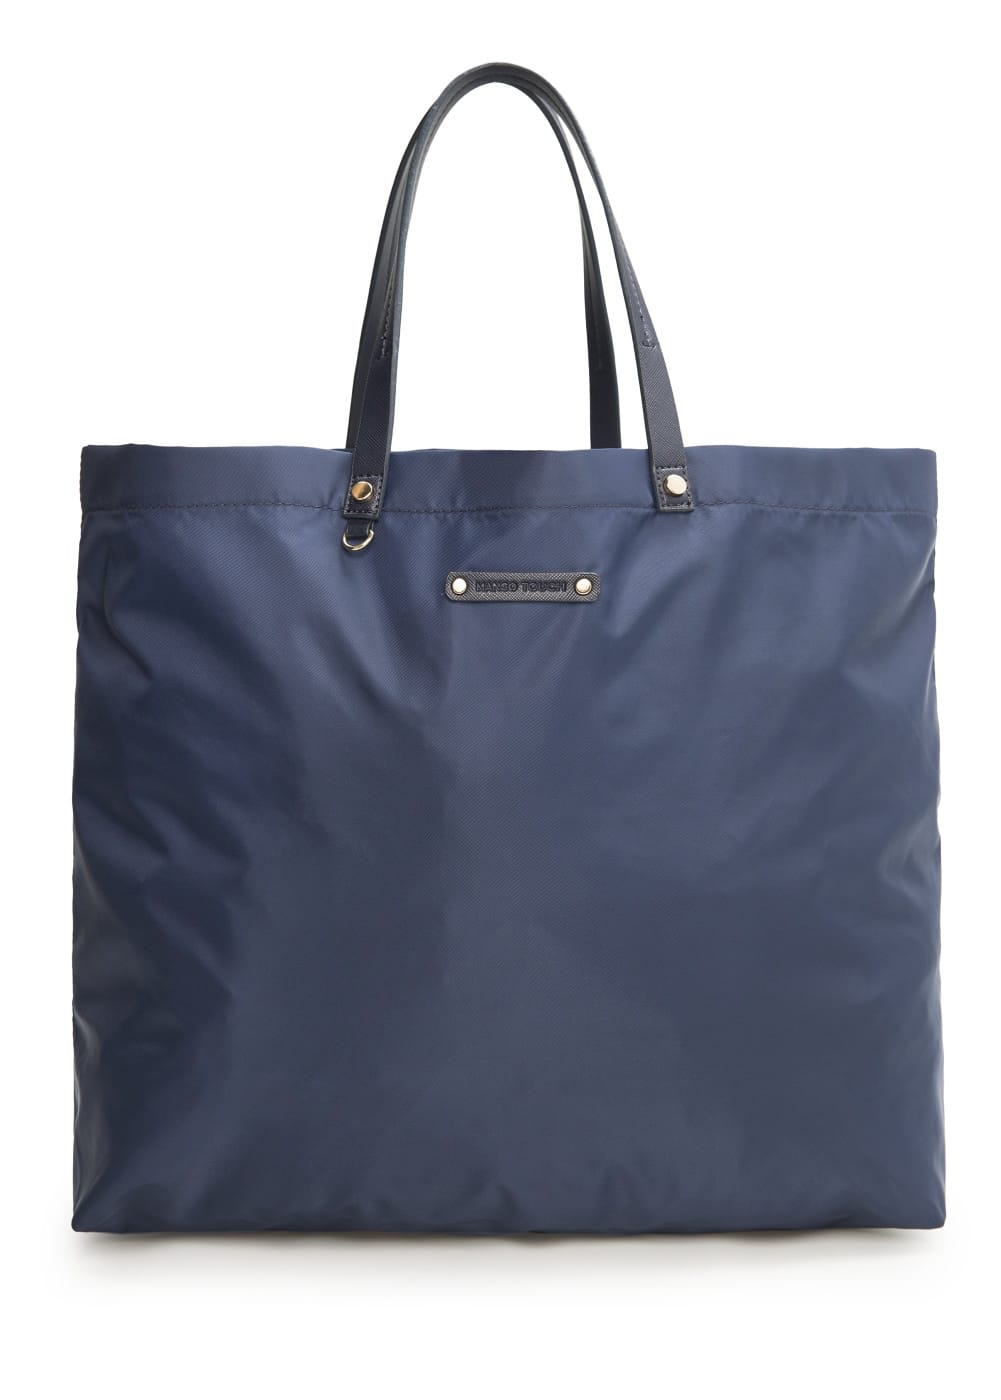 Sac shopper nylon